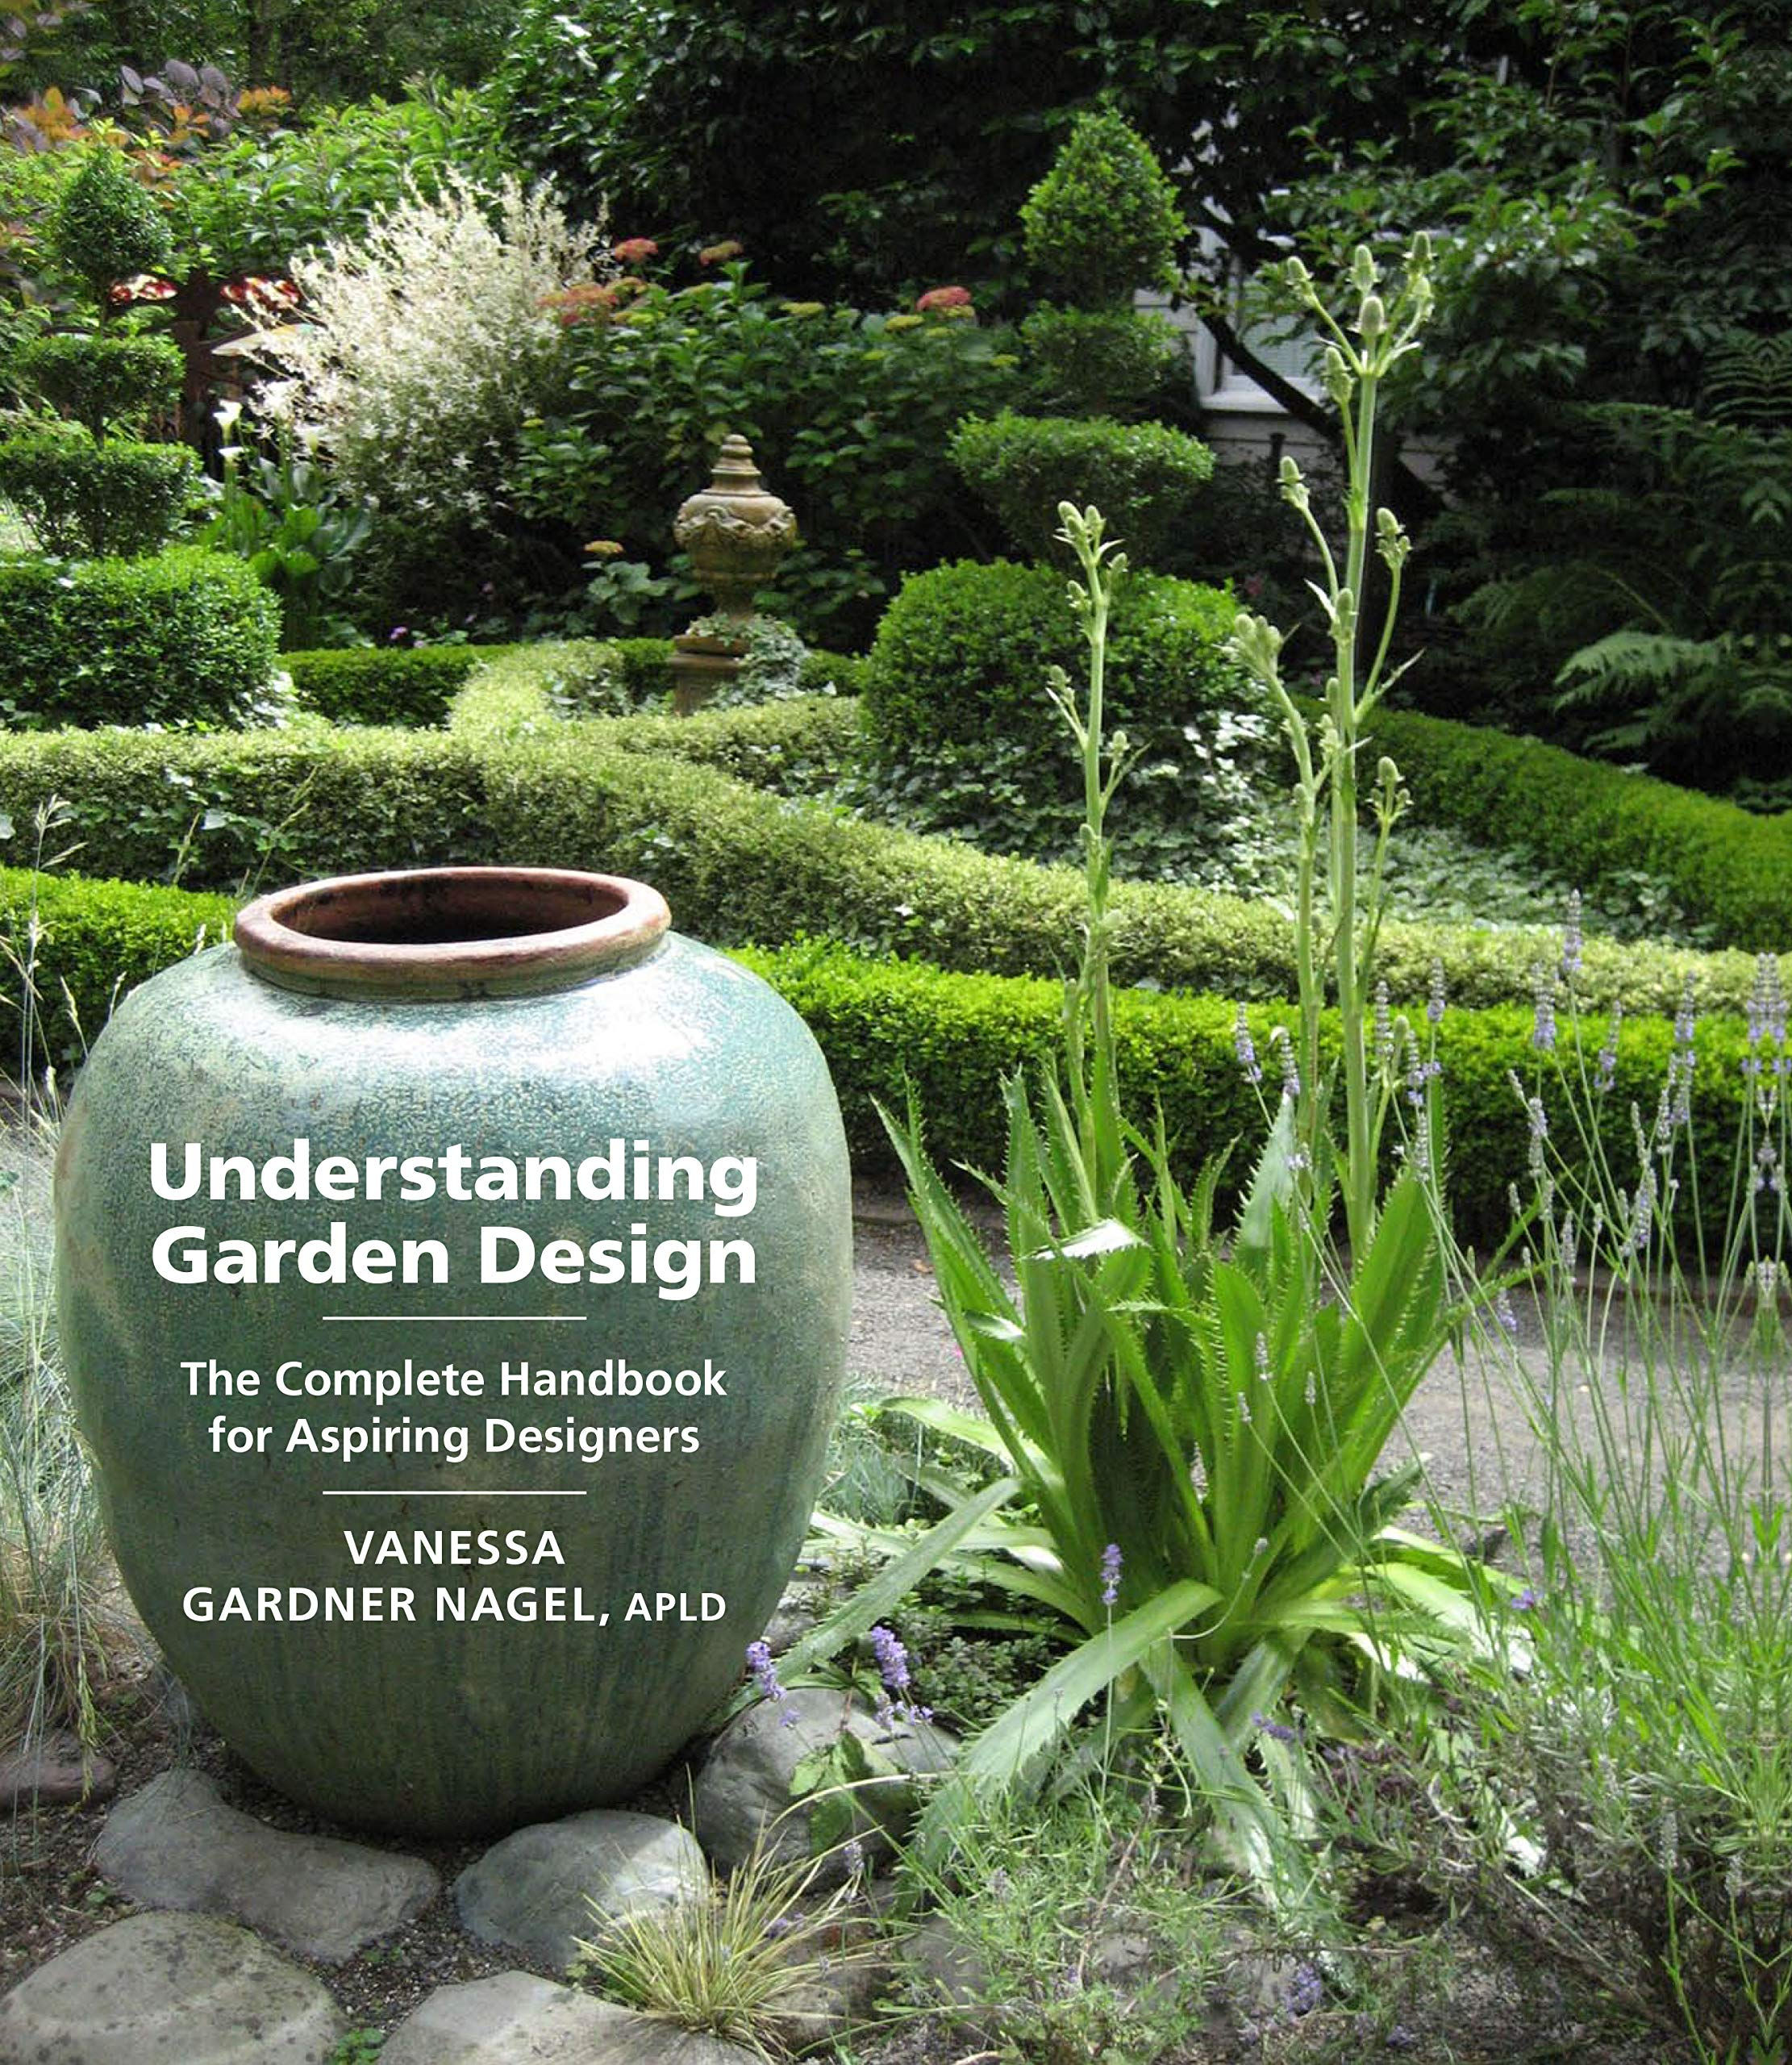 Understanding Garden Design: The Complete Handbook for Aspiring